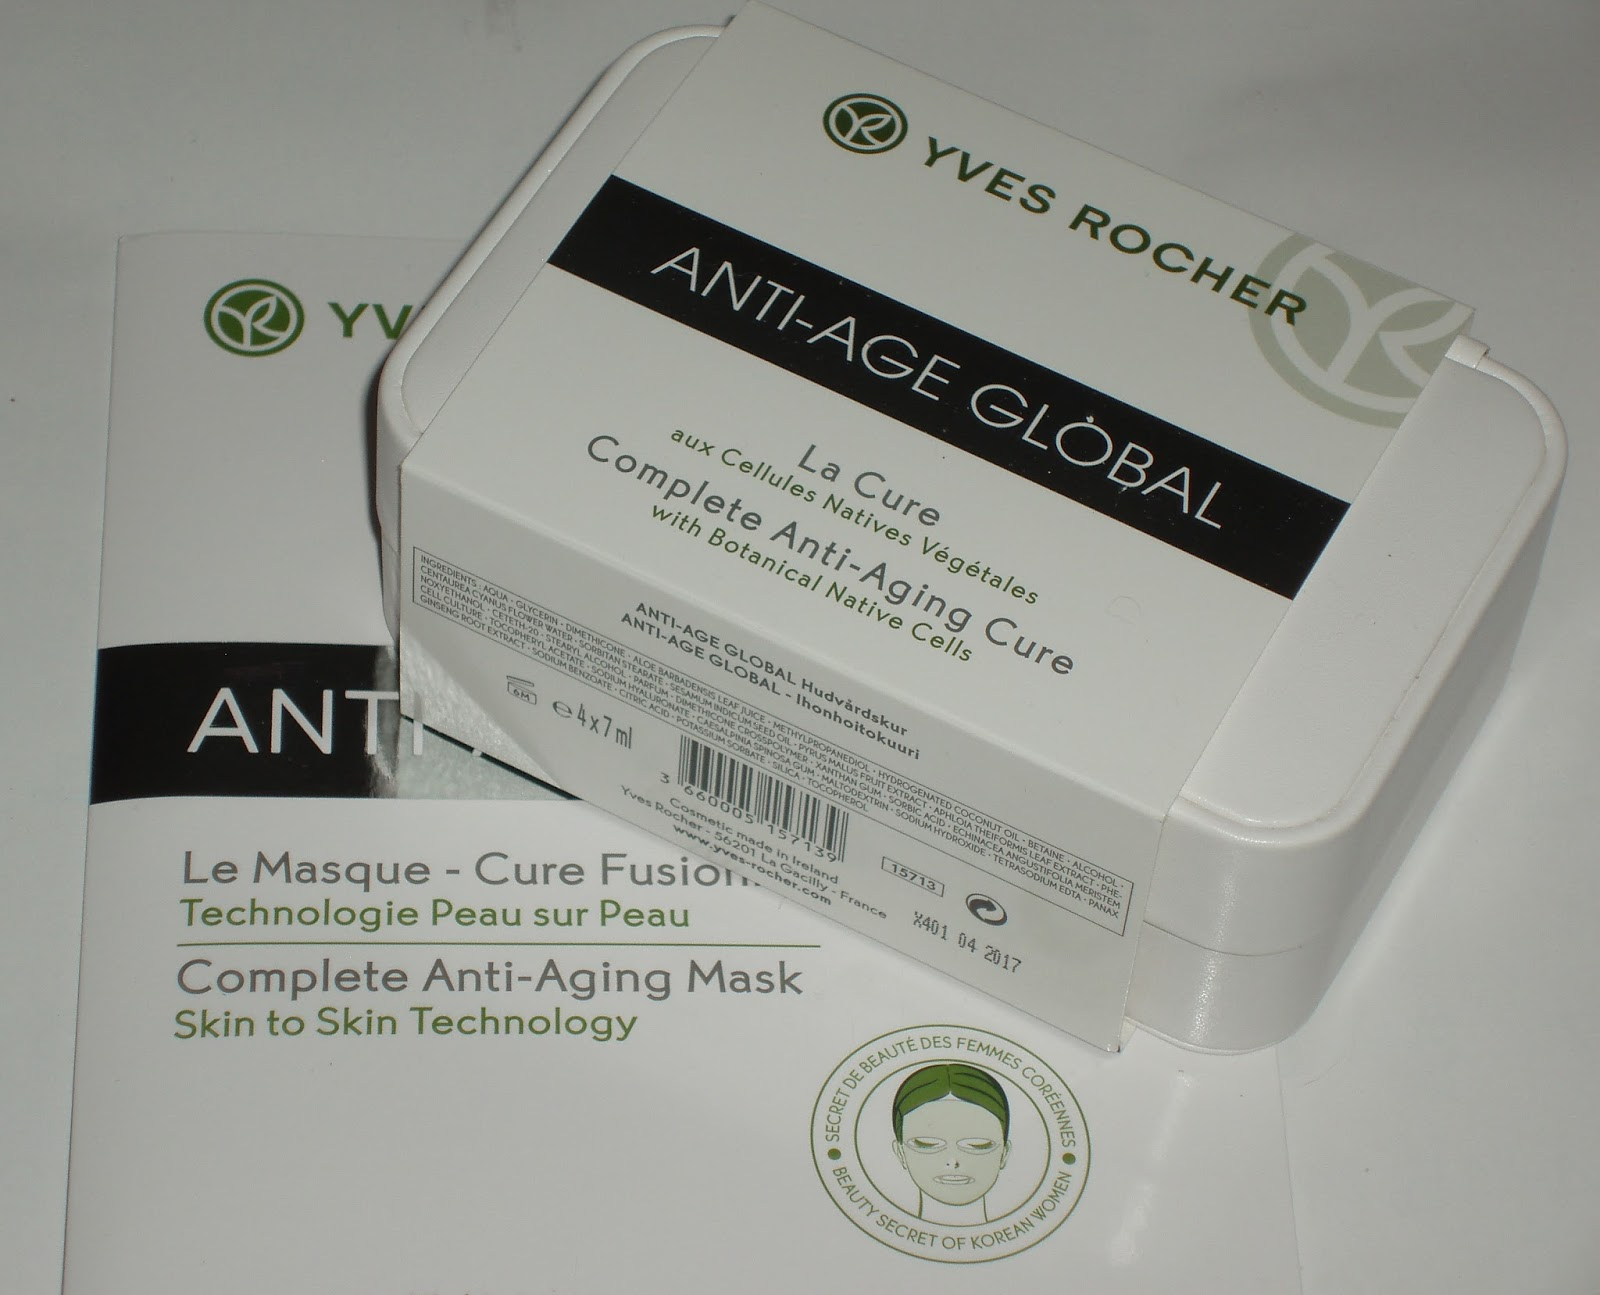 sparkled beauty yves rocher anti age cure mask. Black Bedroom Furniture Sets. Home Design Ideas